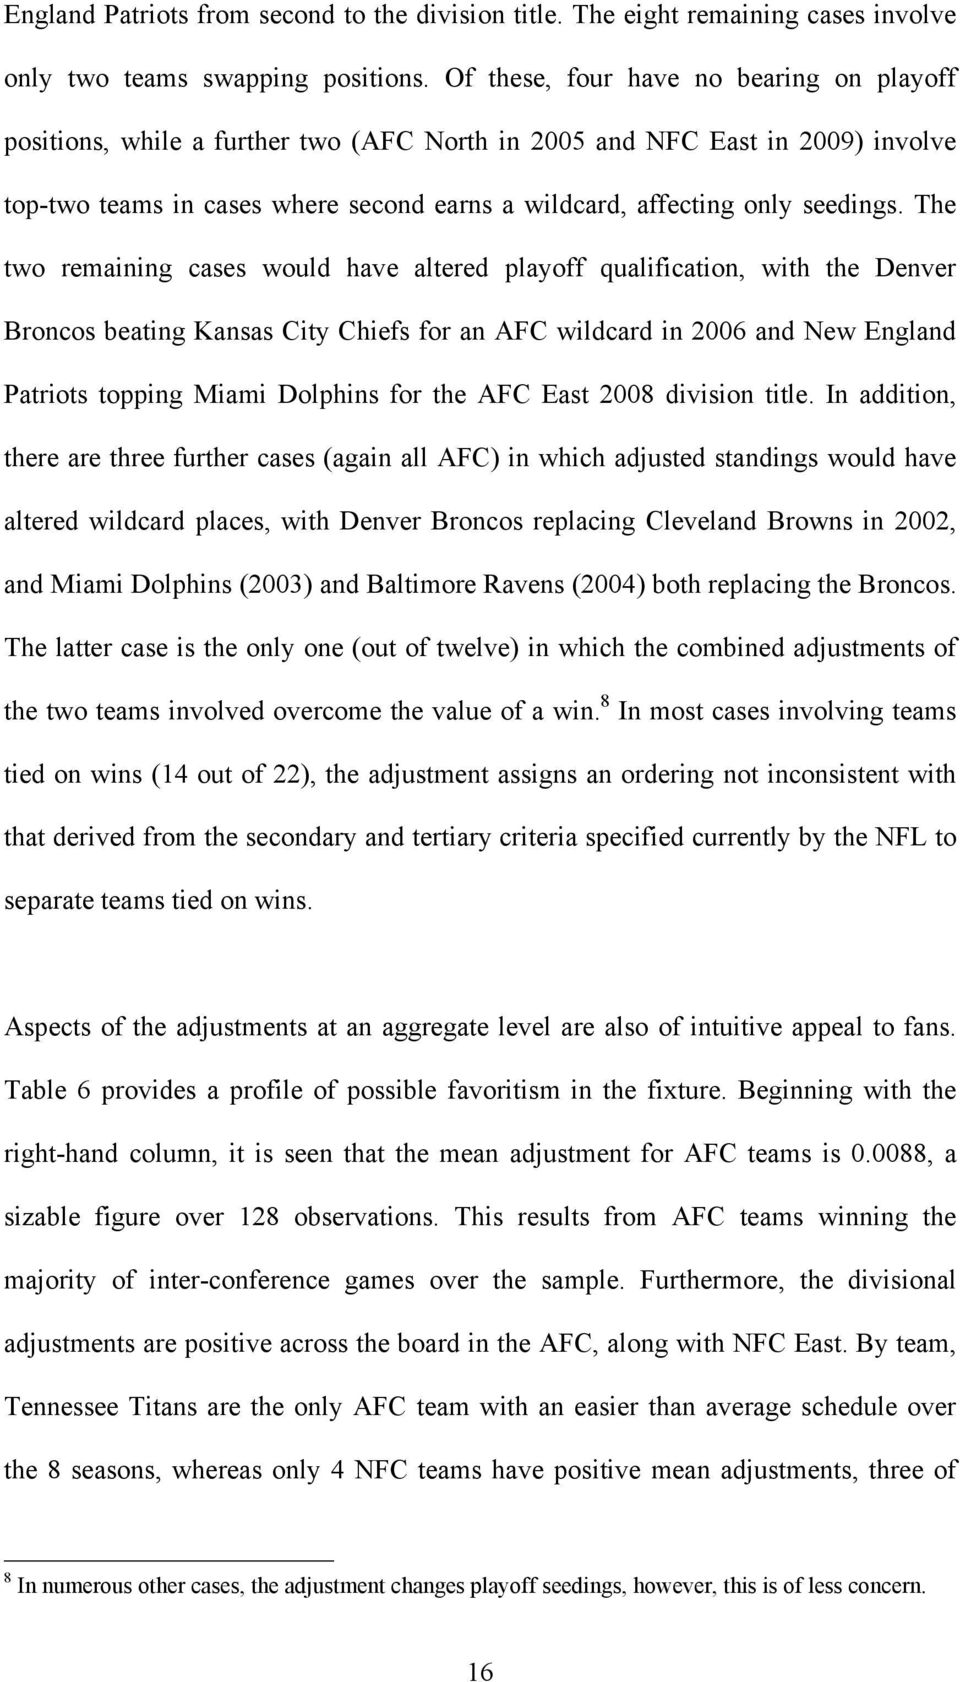 The two remaiig cases would have altered playoff qualificatio, with the Dever Brocos beatig Kasas City Chiefs for a AFC wildcard i 2006 ad New Eglad Patriots toppig Miami Dolphis for the AFC East